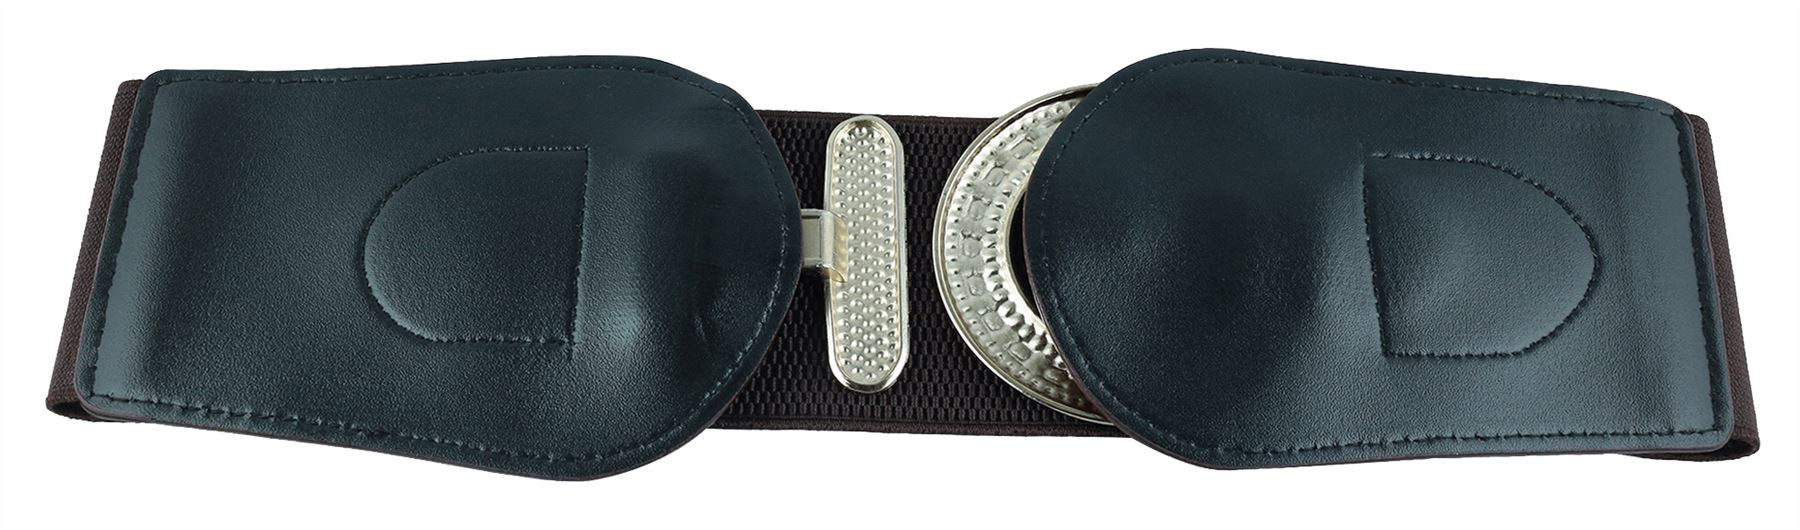 Ladies-Brown-Print-PU-Leather-Circle-Buckle-Wide-Stretch-Elasticated-Belts